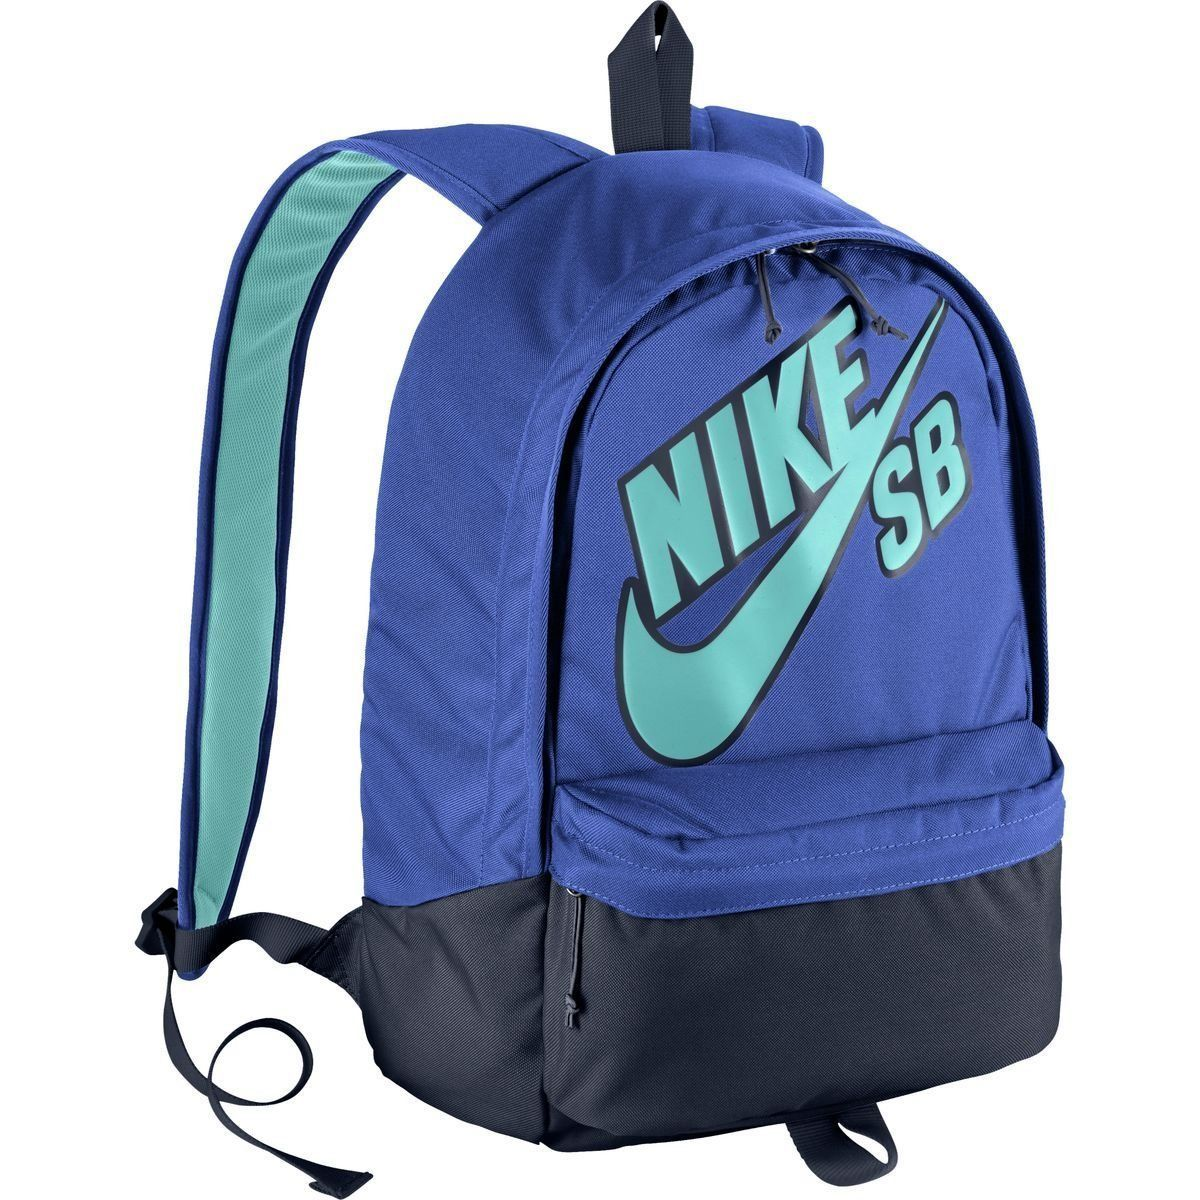 5e2b060c8ed Nike SB 6.0 Piedmont Backpack, BA3275 444 and 33 similar items